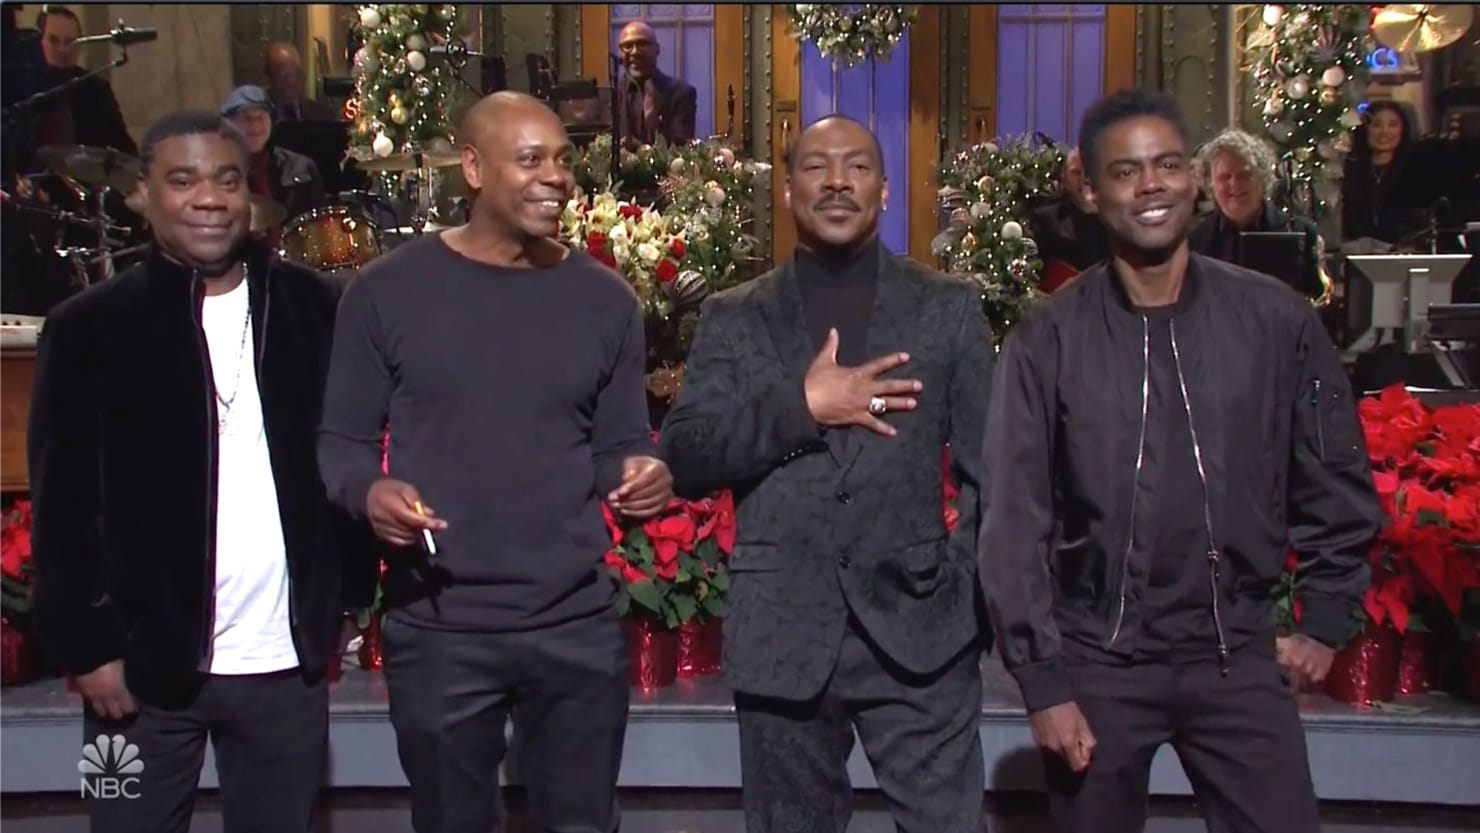 SNL's Eddie Murphy Roasts Bill Cosby Asking 'Who's America's Dad Now?'